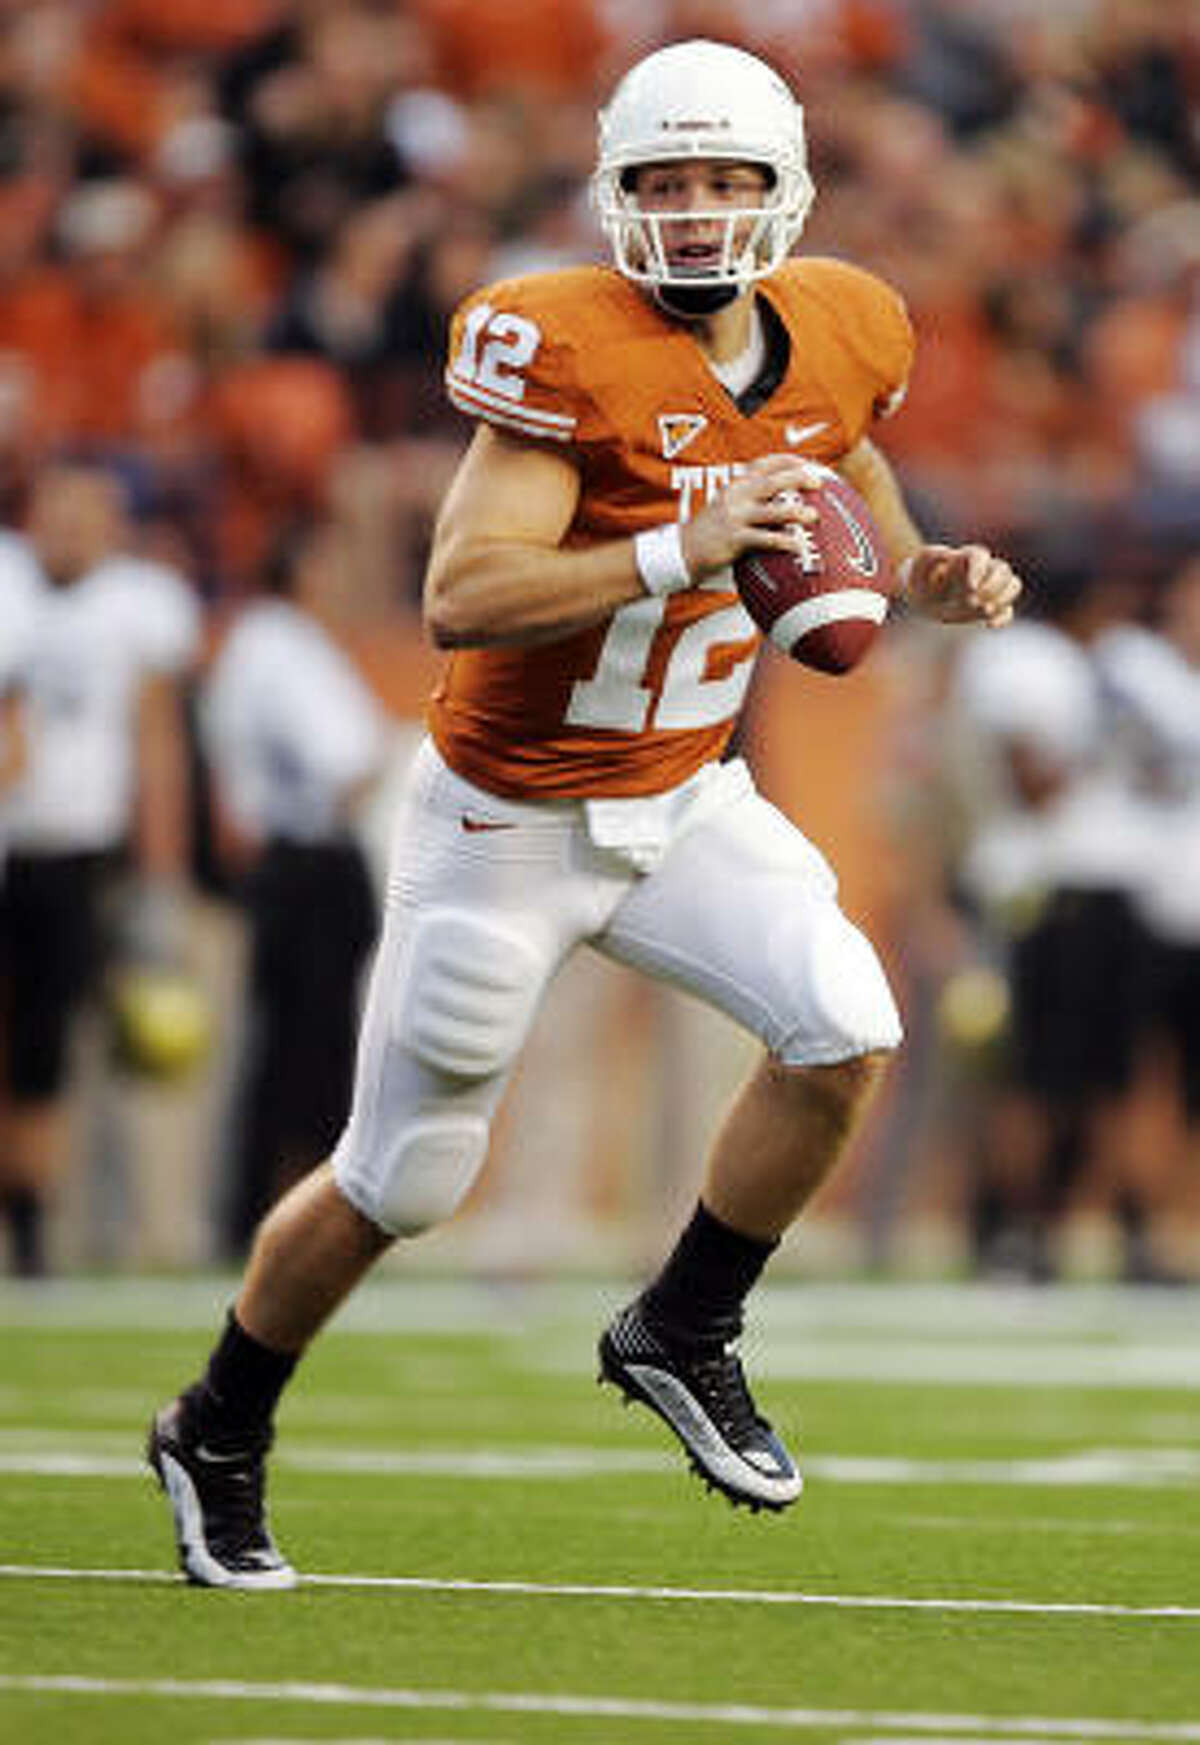 Colt McCoy, 6-1 ¼, 216, 4.79, Texas A winner who has all the intangibles, especially leadership, but scouts worry about his size and durability even though he suffered only one major injury - the shoulder separation in the BCS Championship Game. He runs well, is extremely accurate on short- and mid-range routes. His arm strength is questioned by some scouts. A smart player who worked exclusively out of the shotgun with the Longhorns. He'll need work on taking the snap, dropping back, reading defenses and making the right decisions. Should go in the second round.